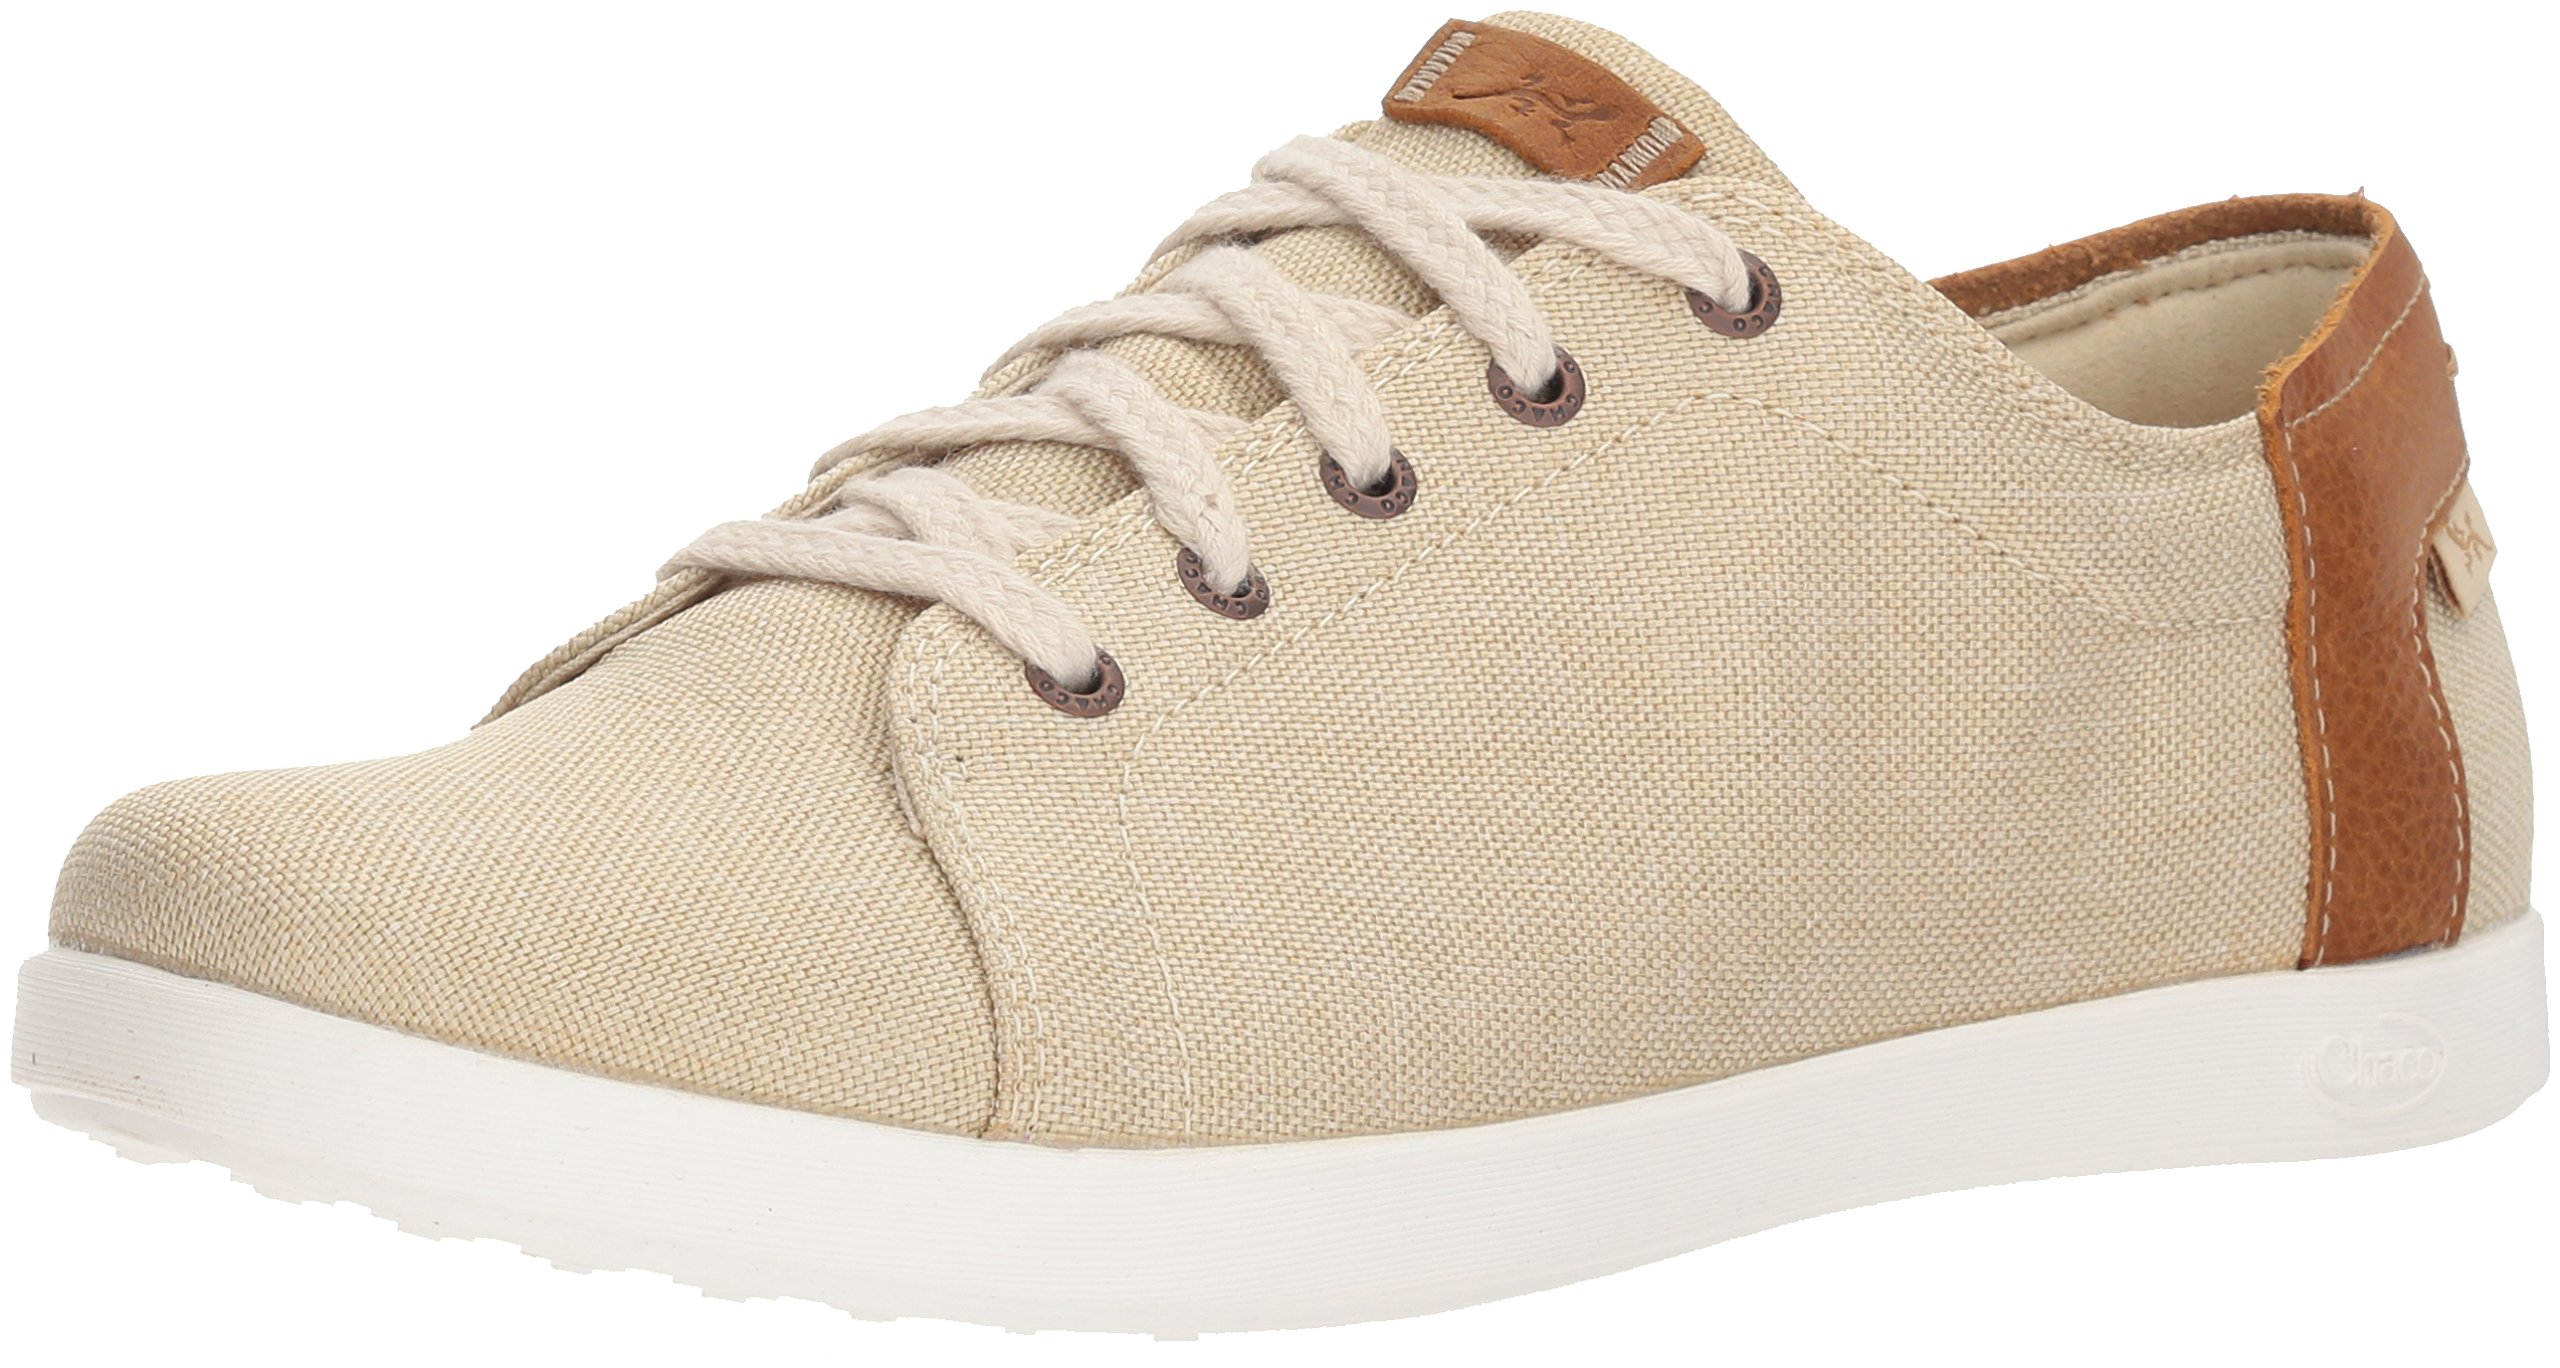 Chaco Women's Ionia Lace Loafer Flat, Sand, 8 Medium US by Chaco